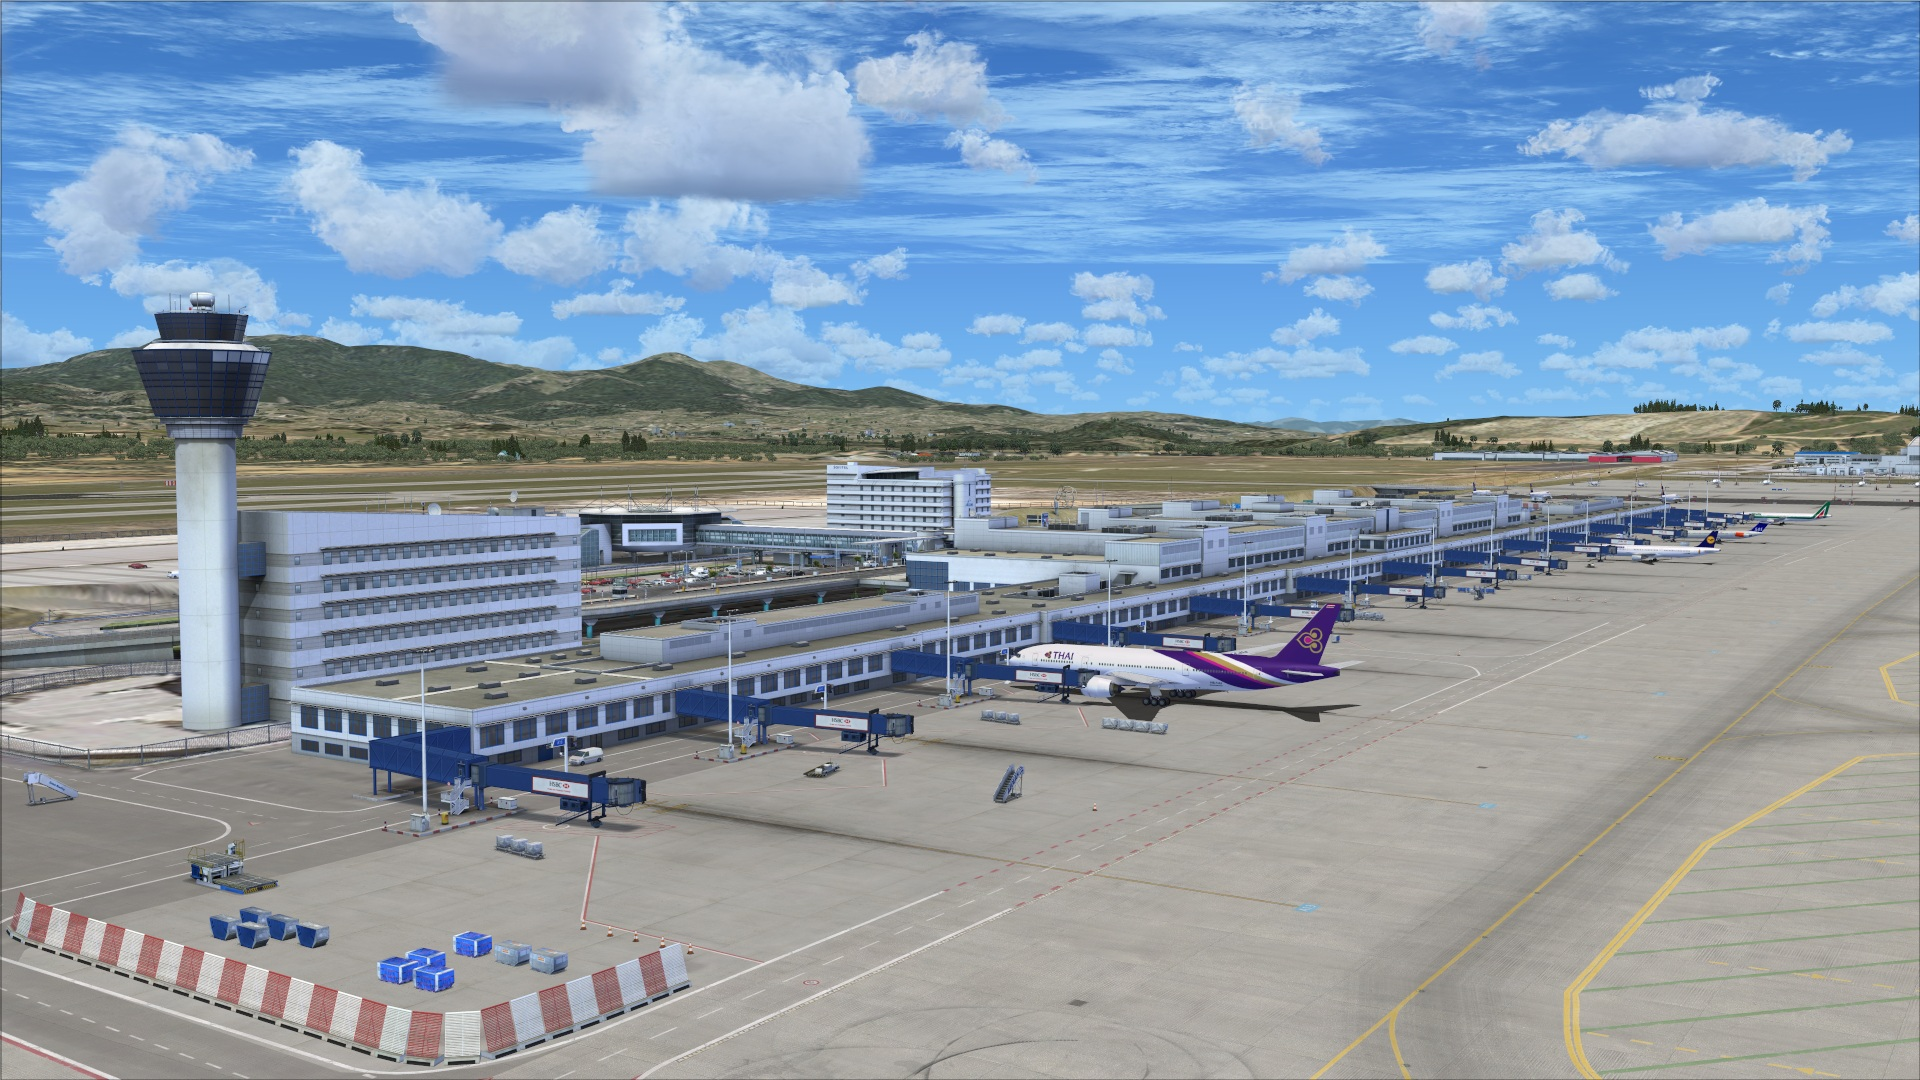 Review Of Flytampa Athens For Fsx Athens International